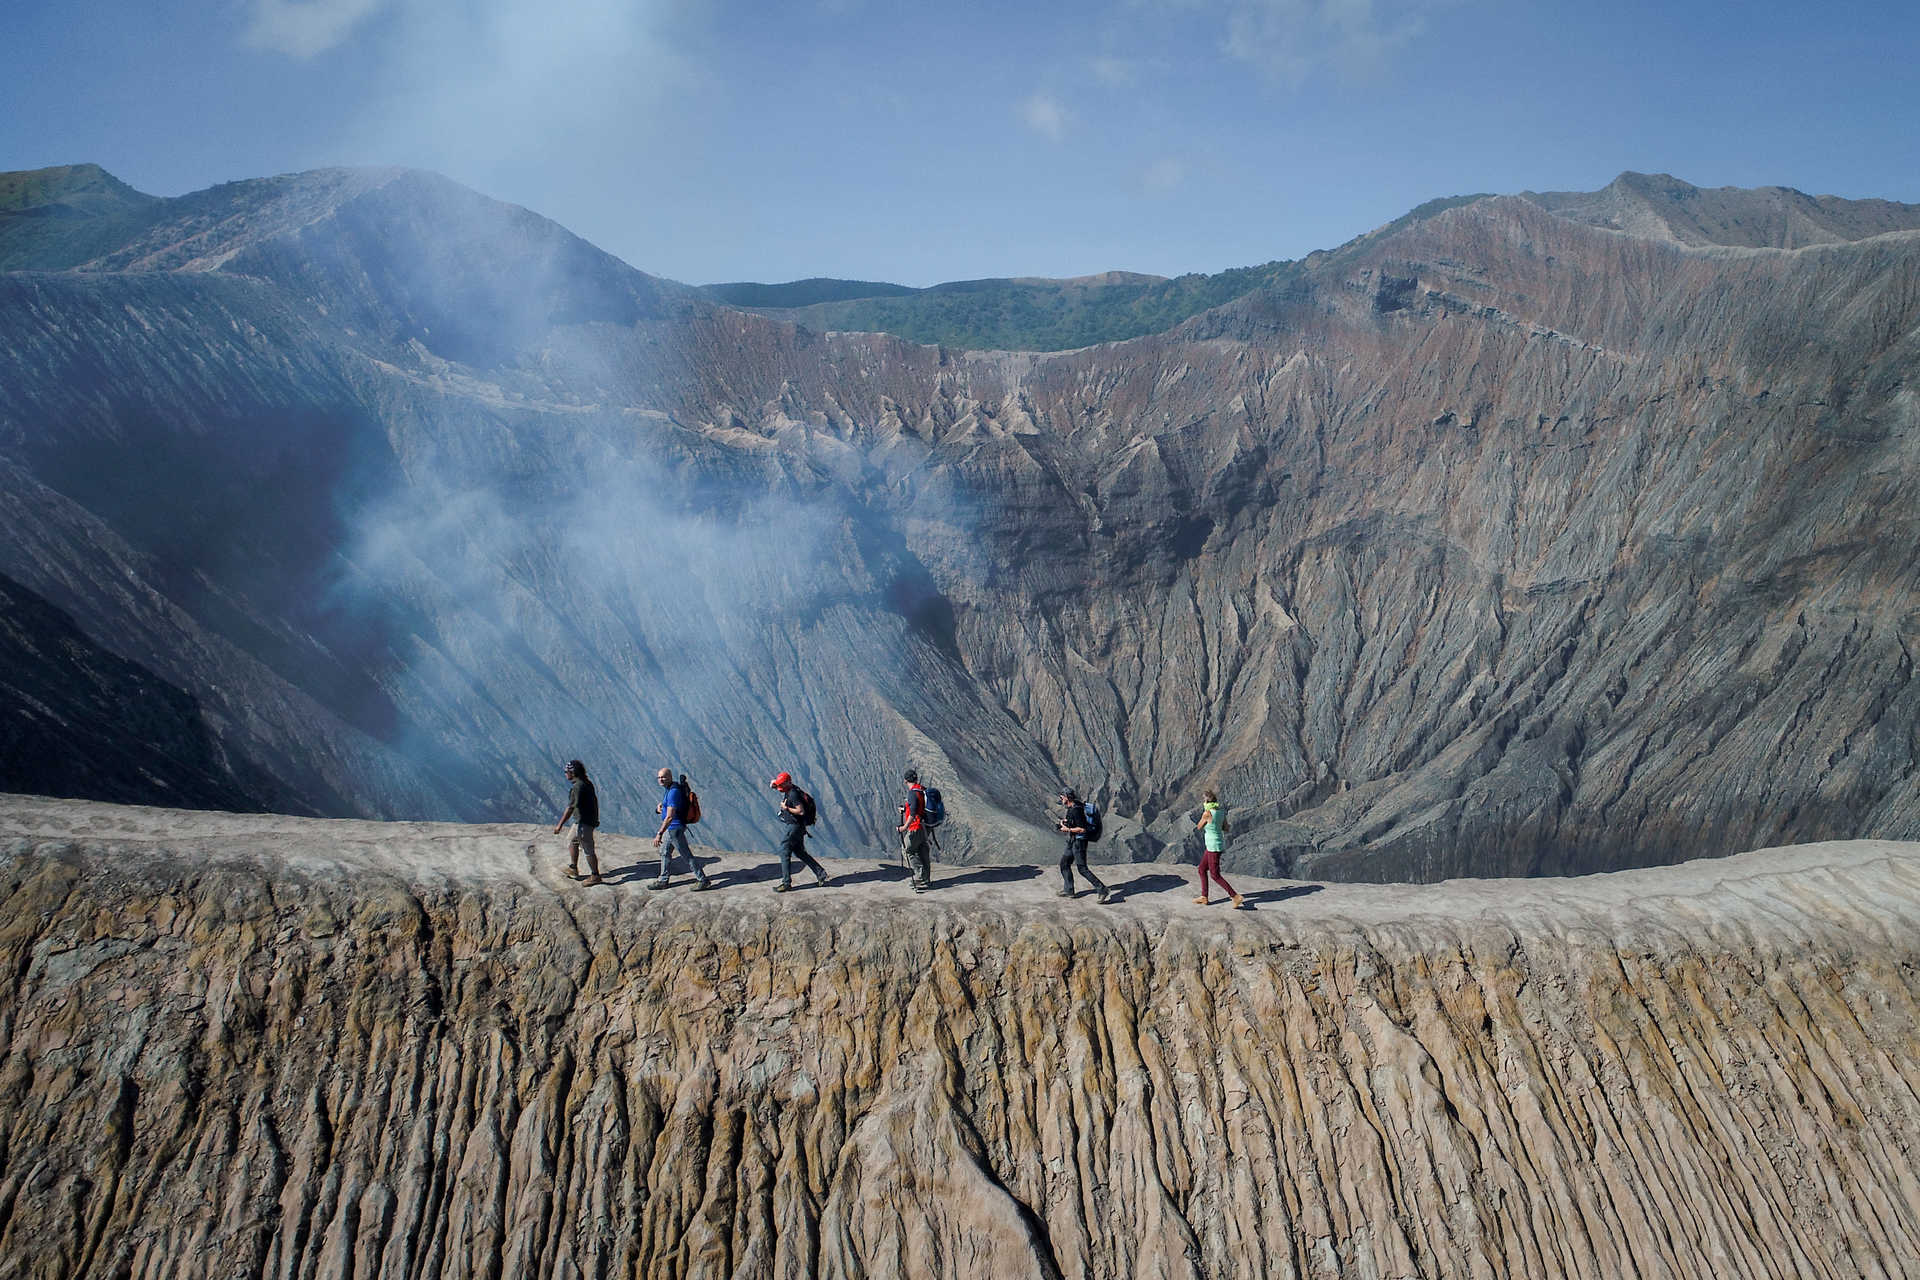 Hikers walking on the Bromo vulcano, Java